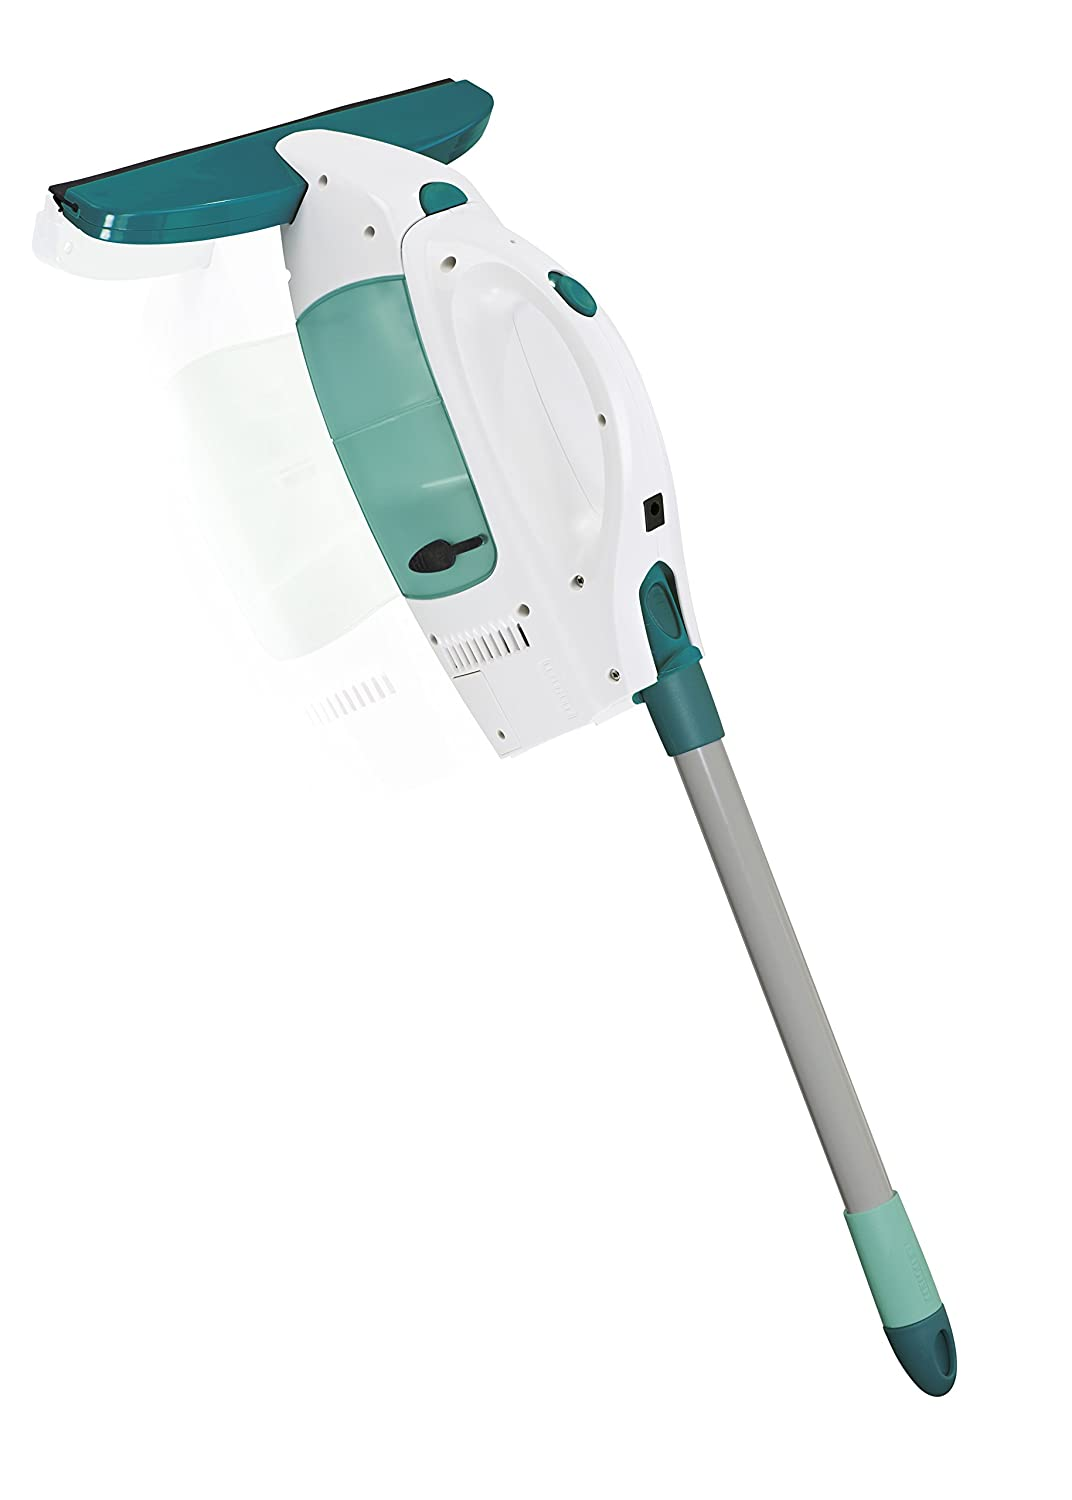 Leifheit Window Vacuum Cleaner, Streak-Free Drying 51113